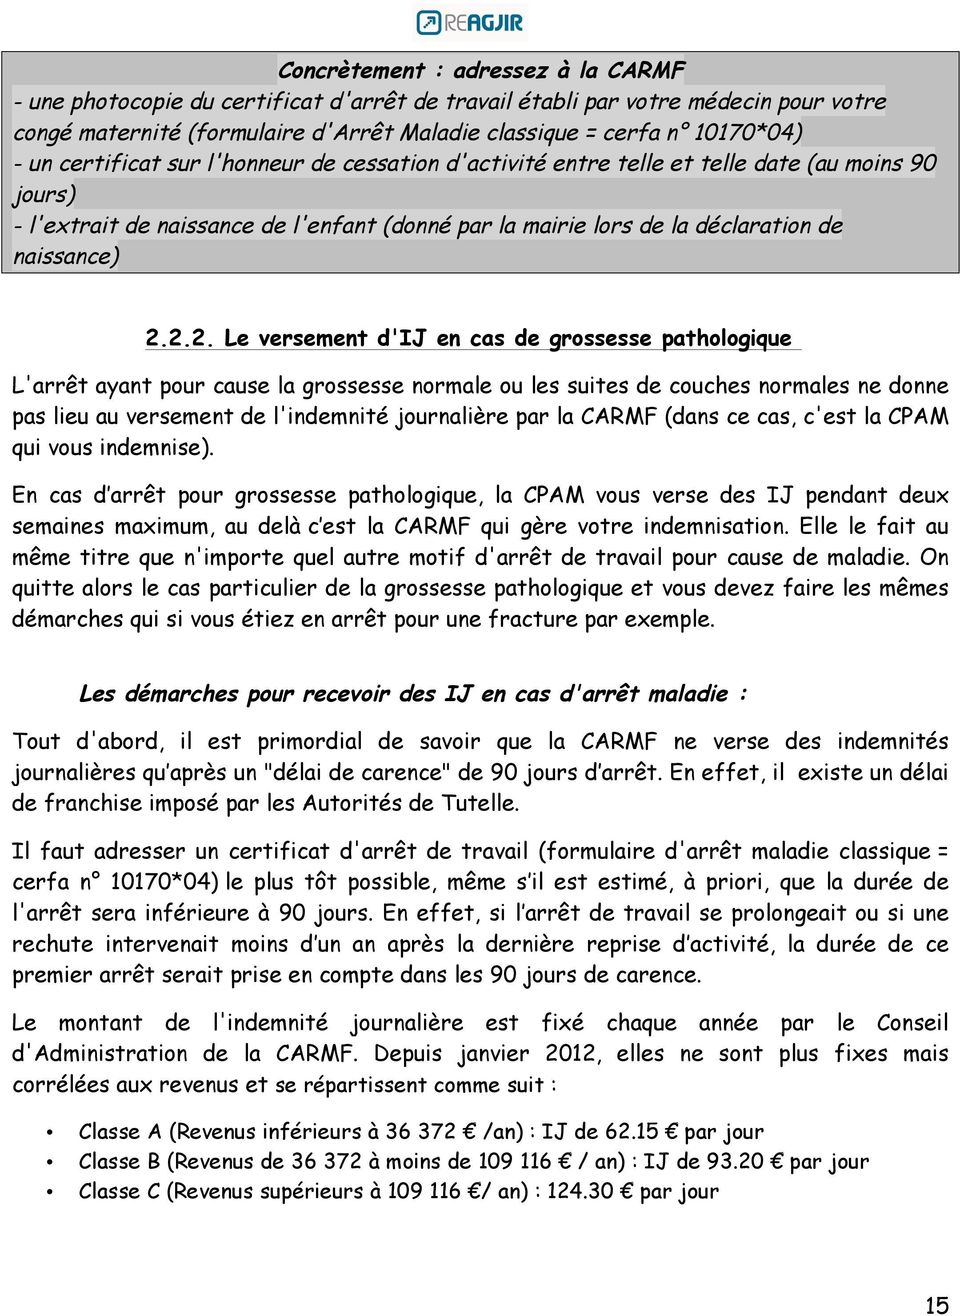 Le P Tit Guide Reagjir Des Medecins Parents Pdf